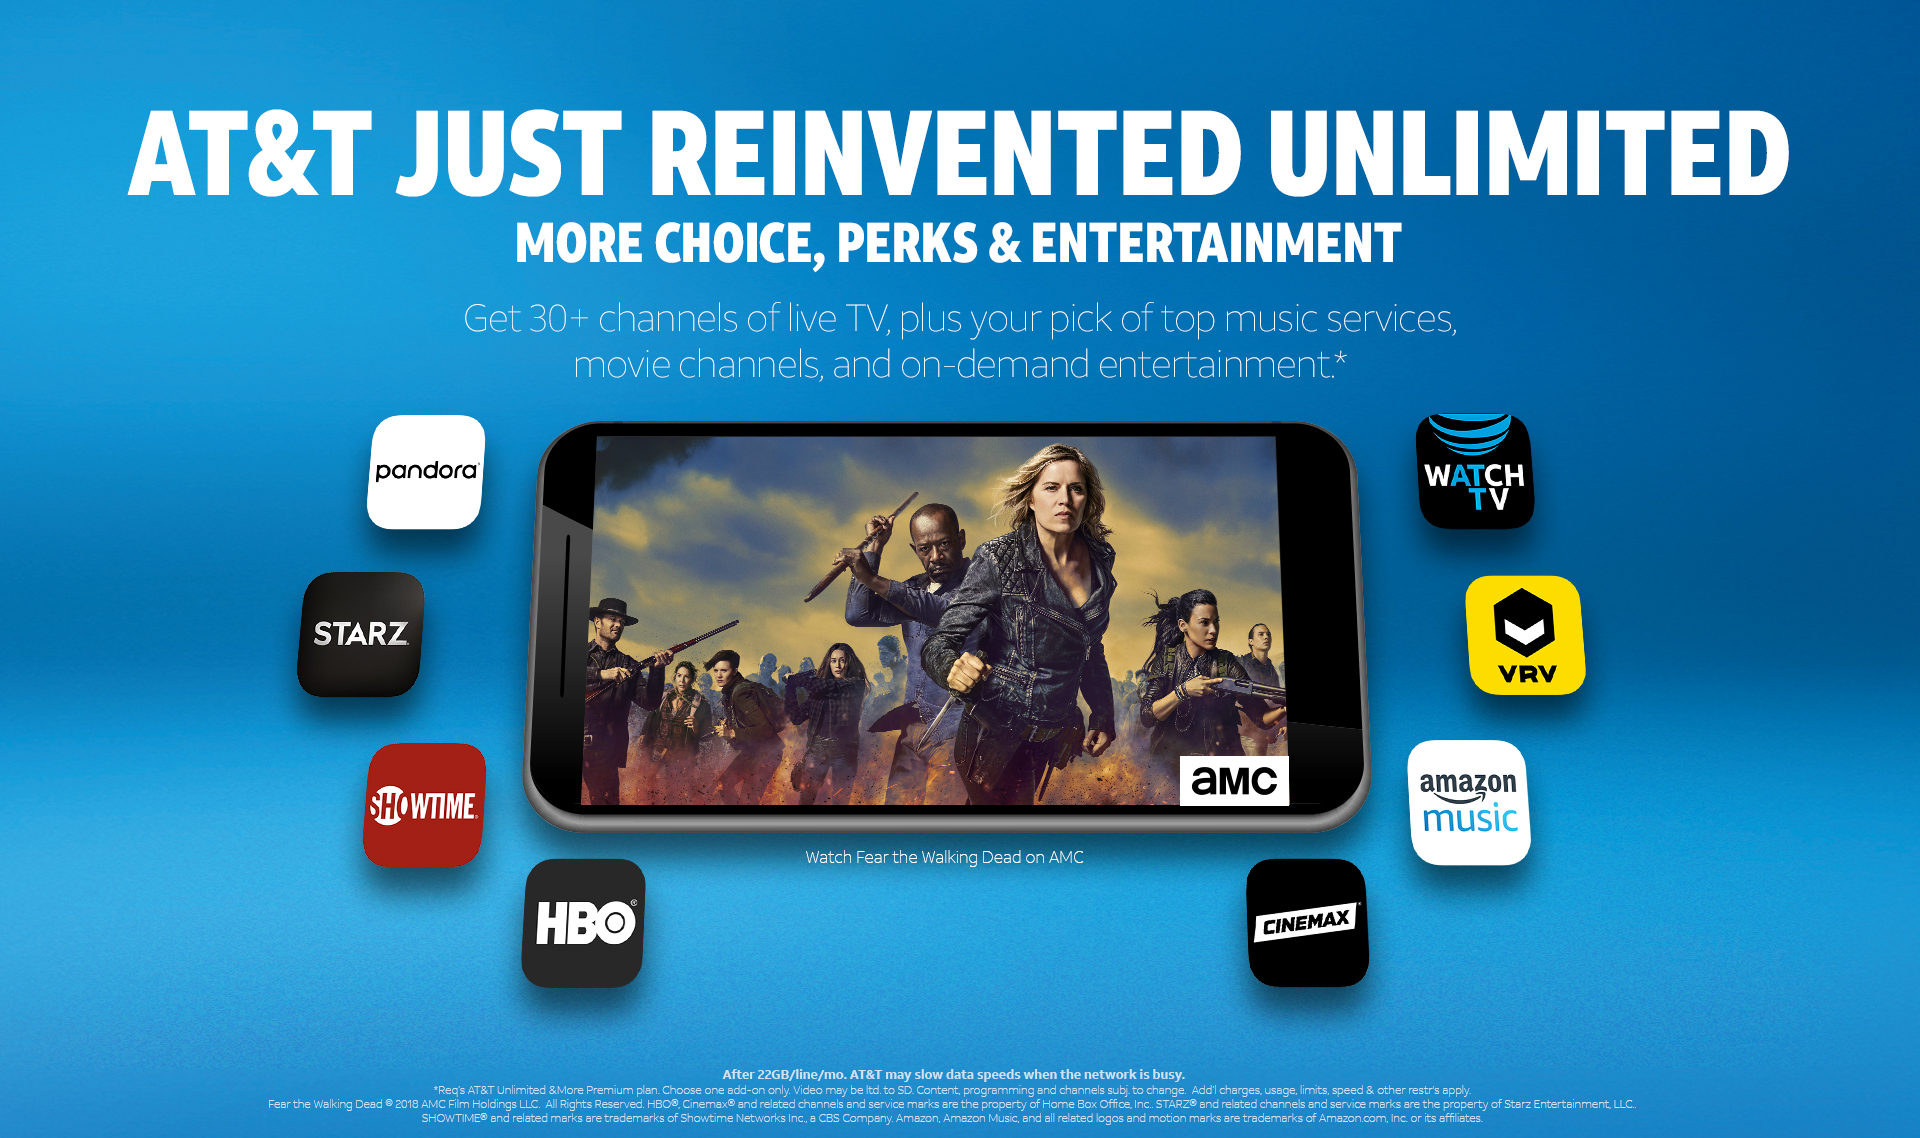 AT&T debuts their skinny Watch TV service to fend off Sling TV